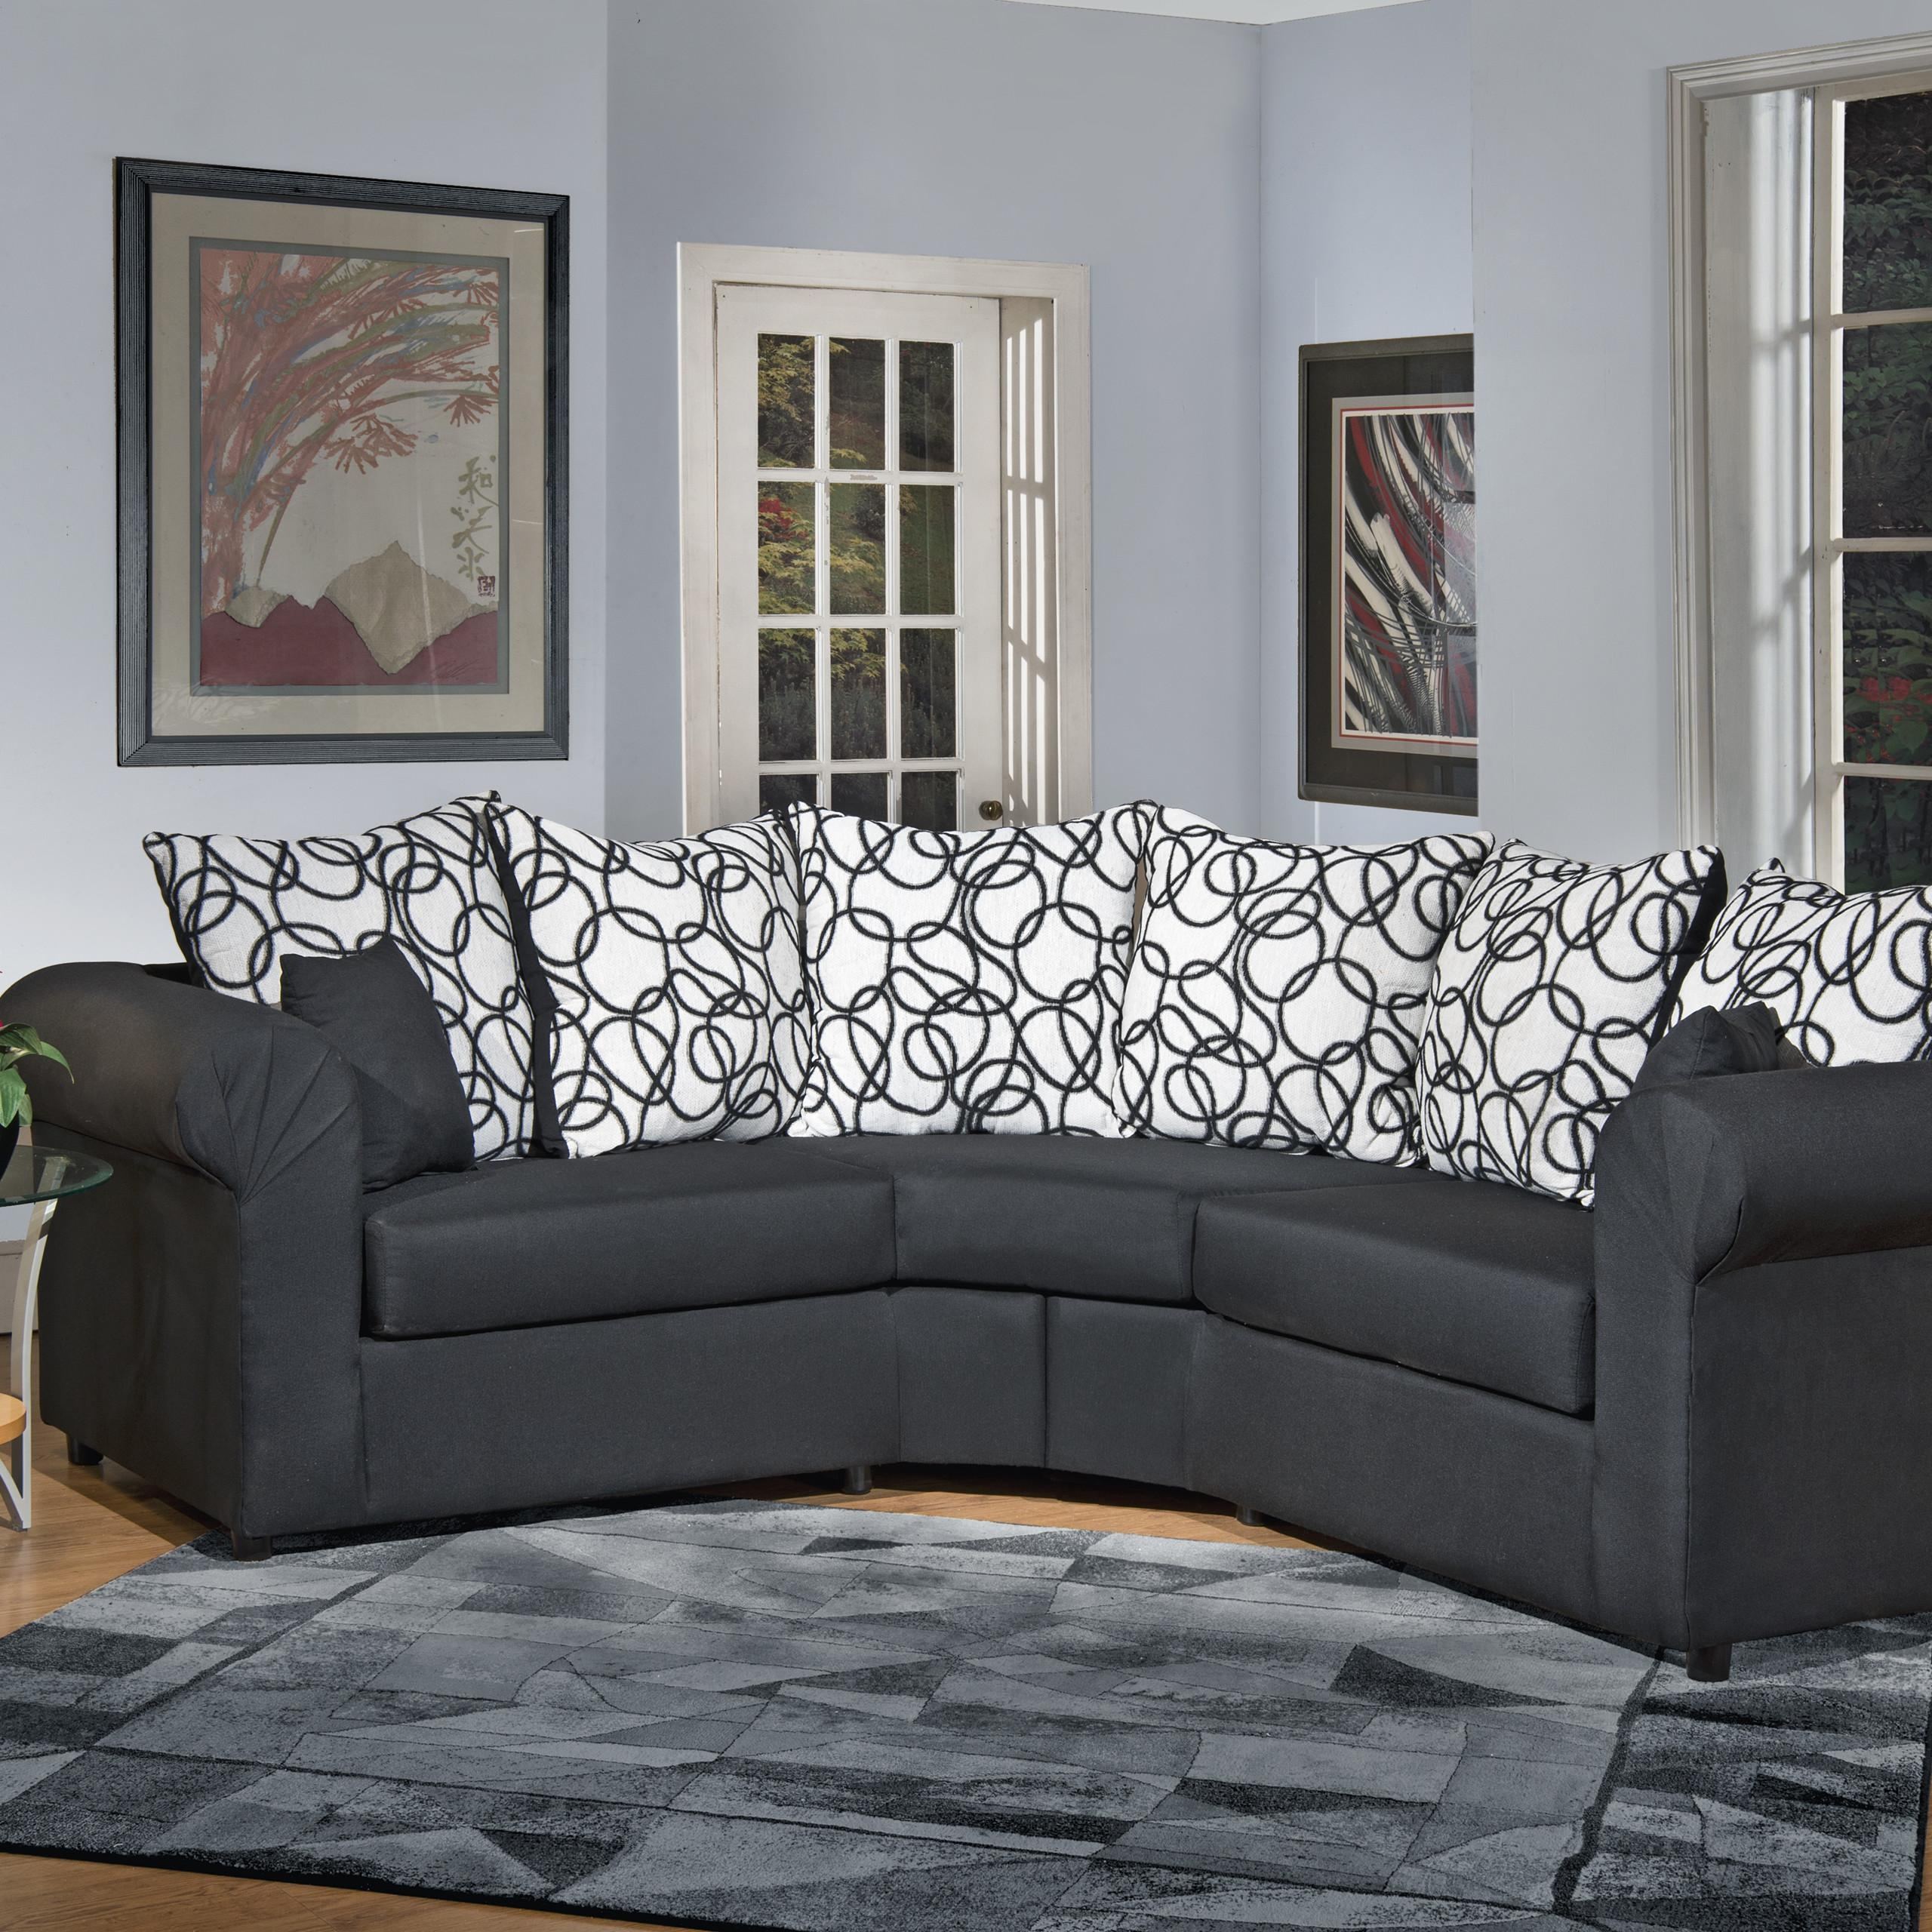 Furniture & Sofa: Best Sectional For Small Spaces | Small Space Intended For Small Scale Sectionals (Image 6 of 20)